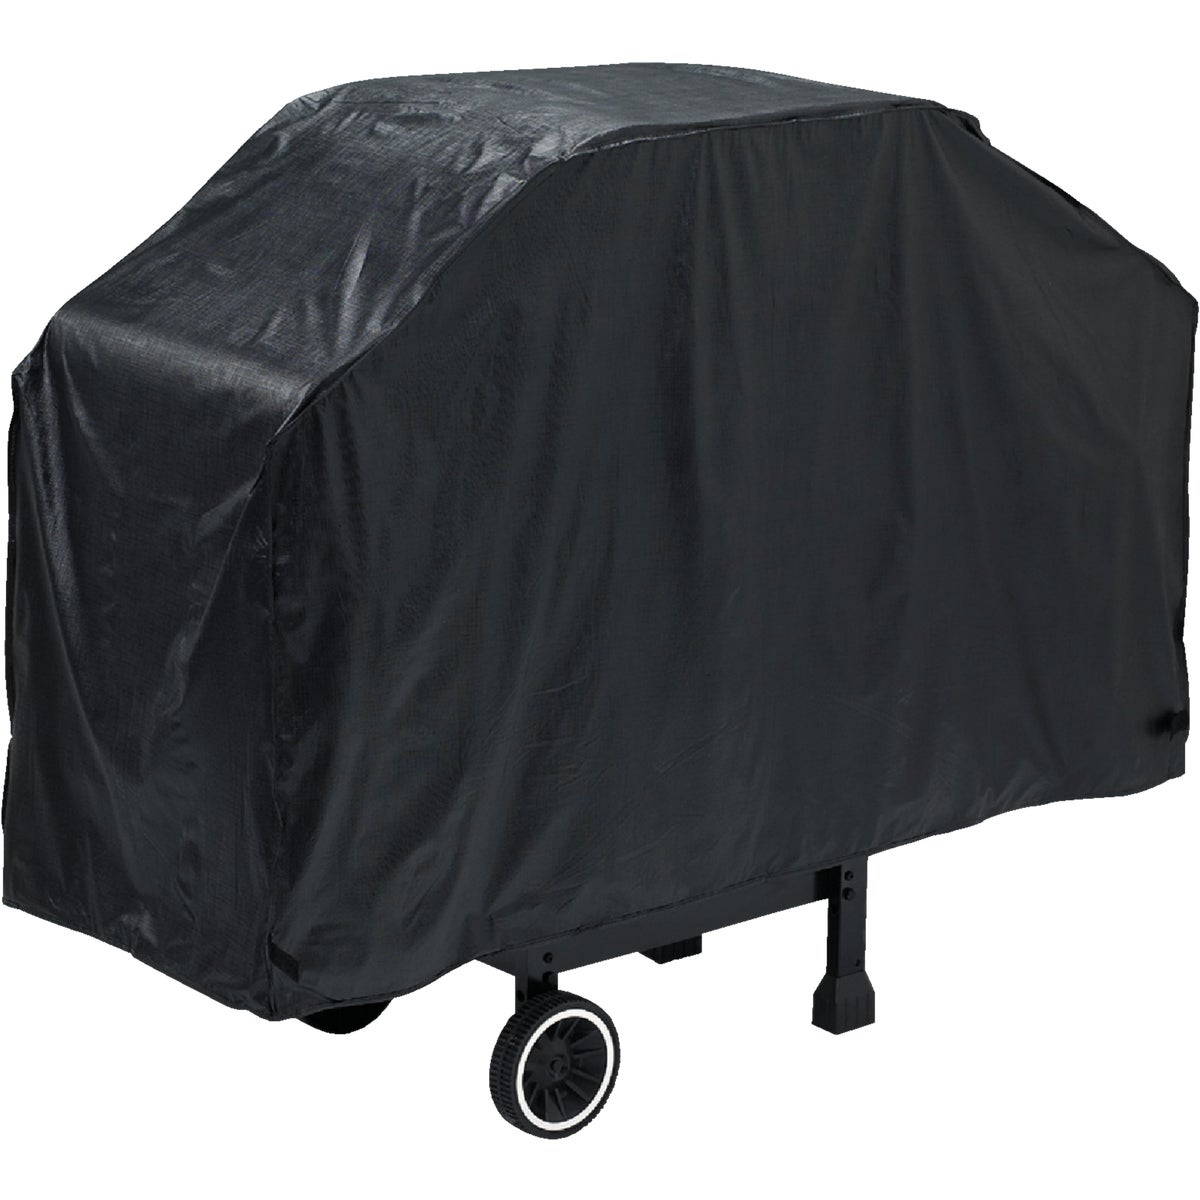 "60""FULL LGTH GRILL COVER - 84160 by Onward Multi Corp Hk"